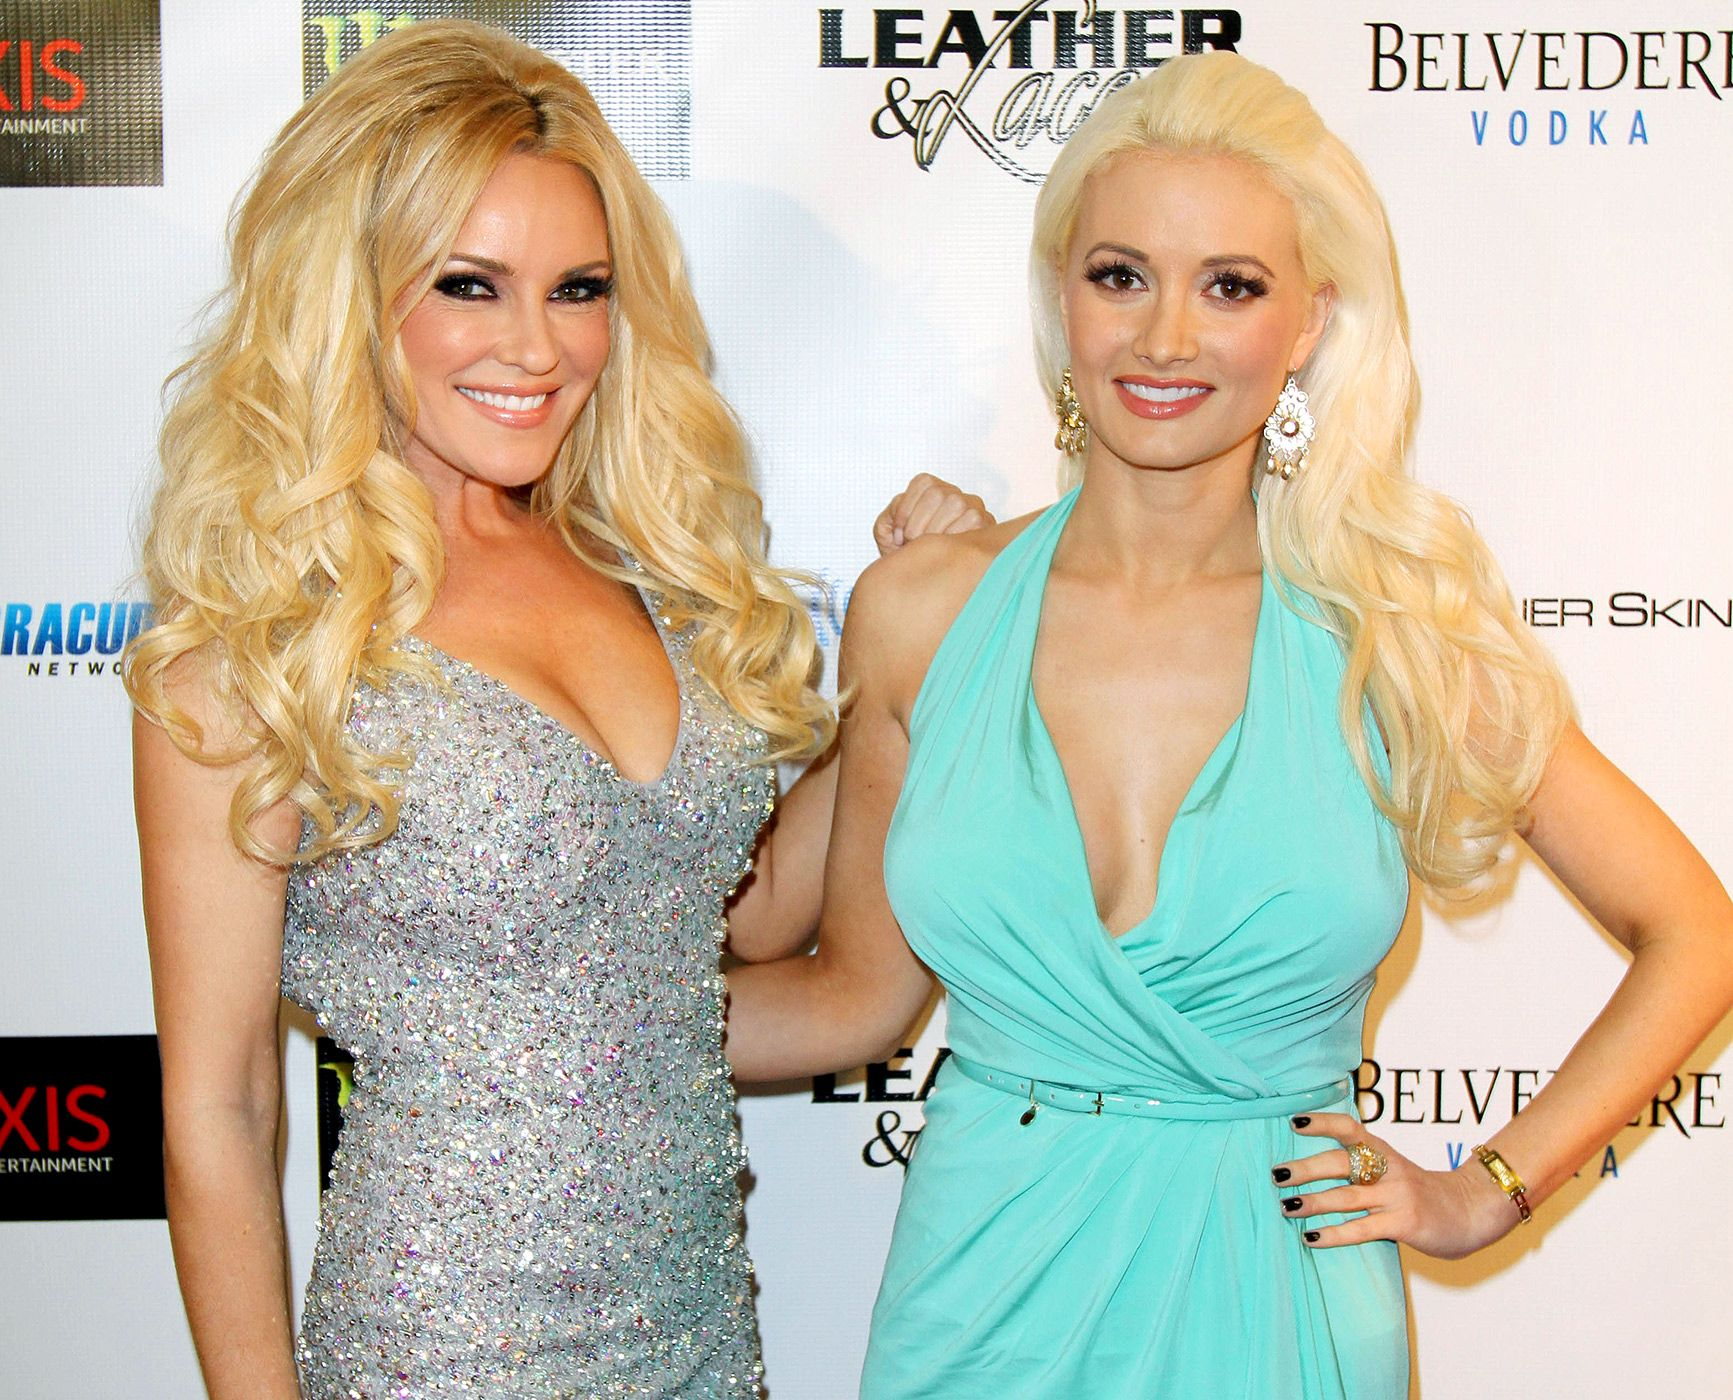 Holly Madison congratulated former Girls Next Door costar Brid Marquardt on her engagement via Twitter on